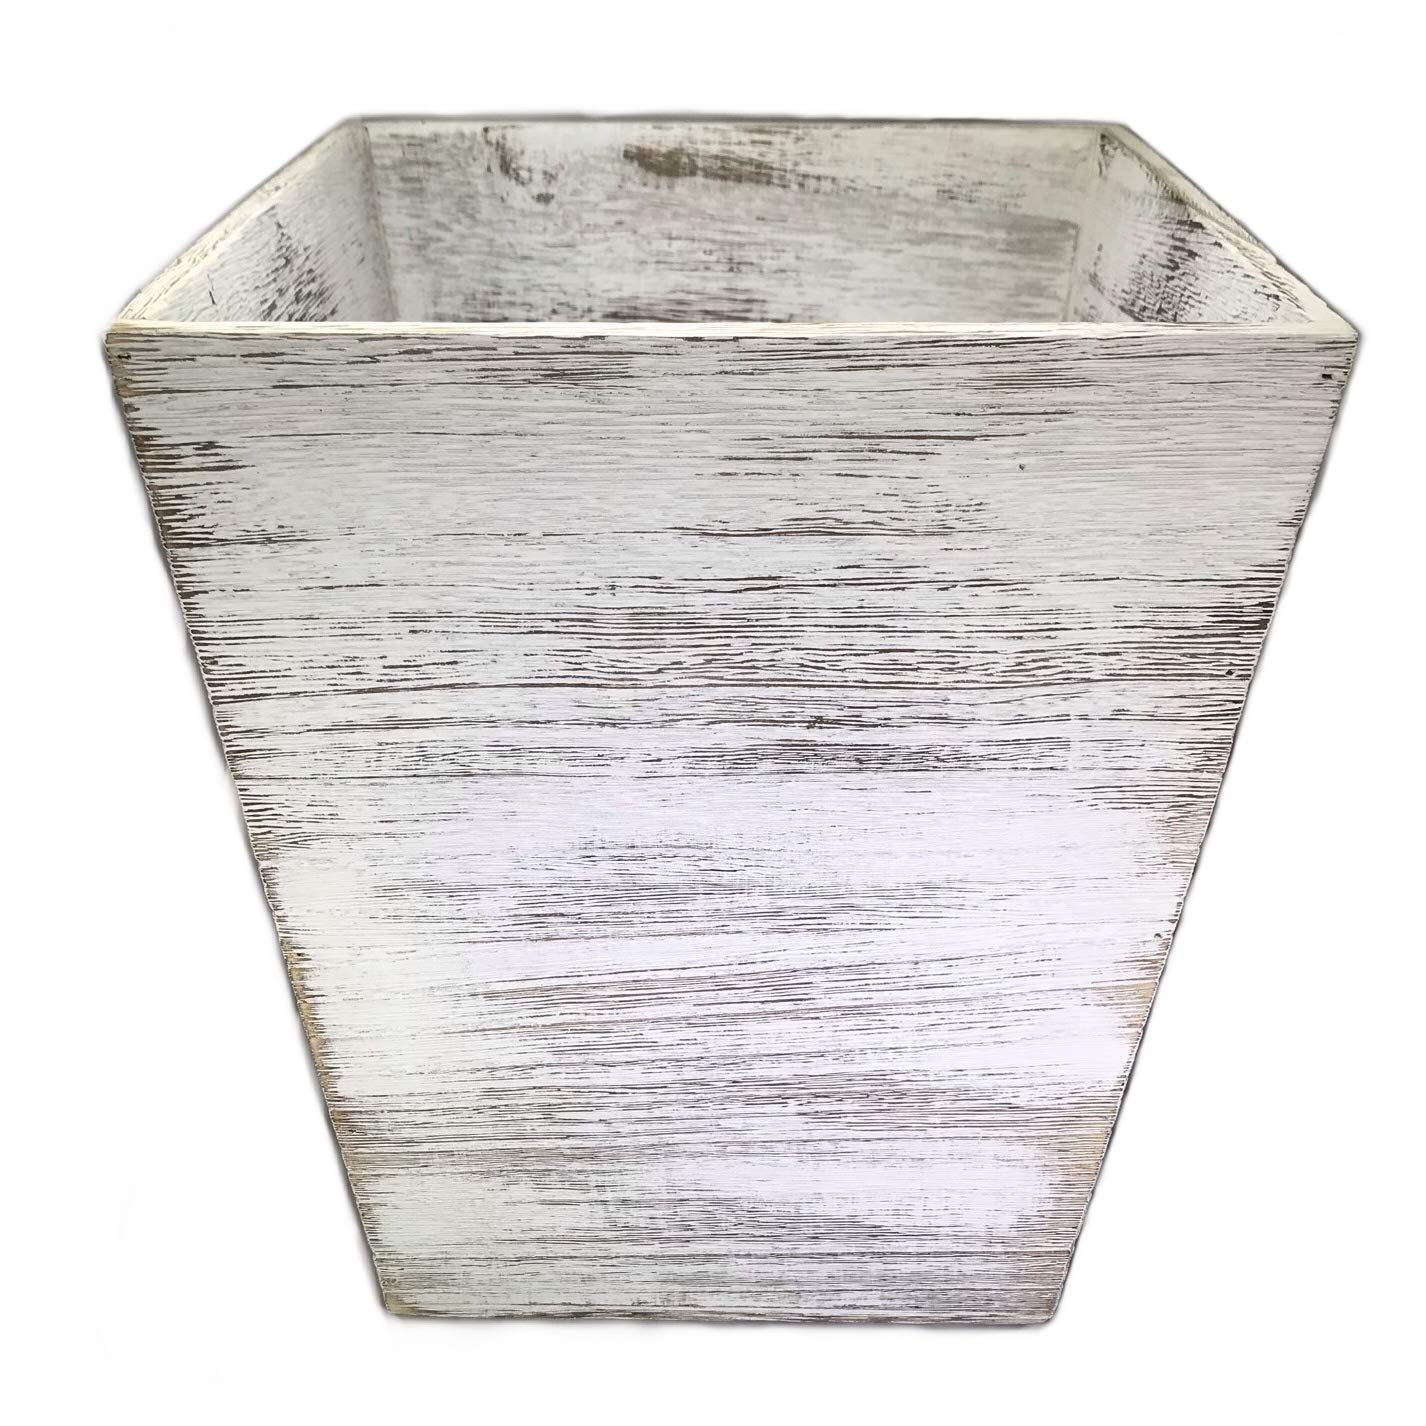 Ahaus Imports - Rustic Wood Waste Basket - Square - Weathered White Barnwood Style - 12x10x10in by Ahaus Imports